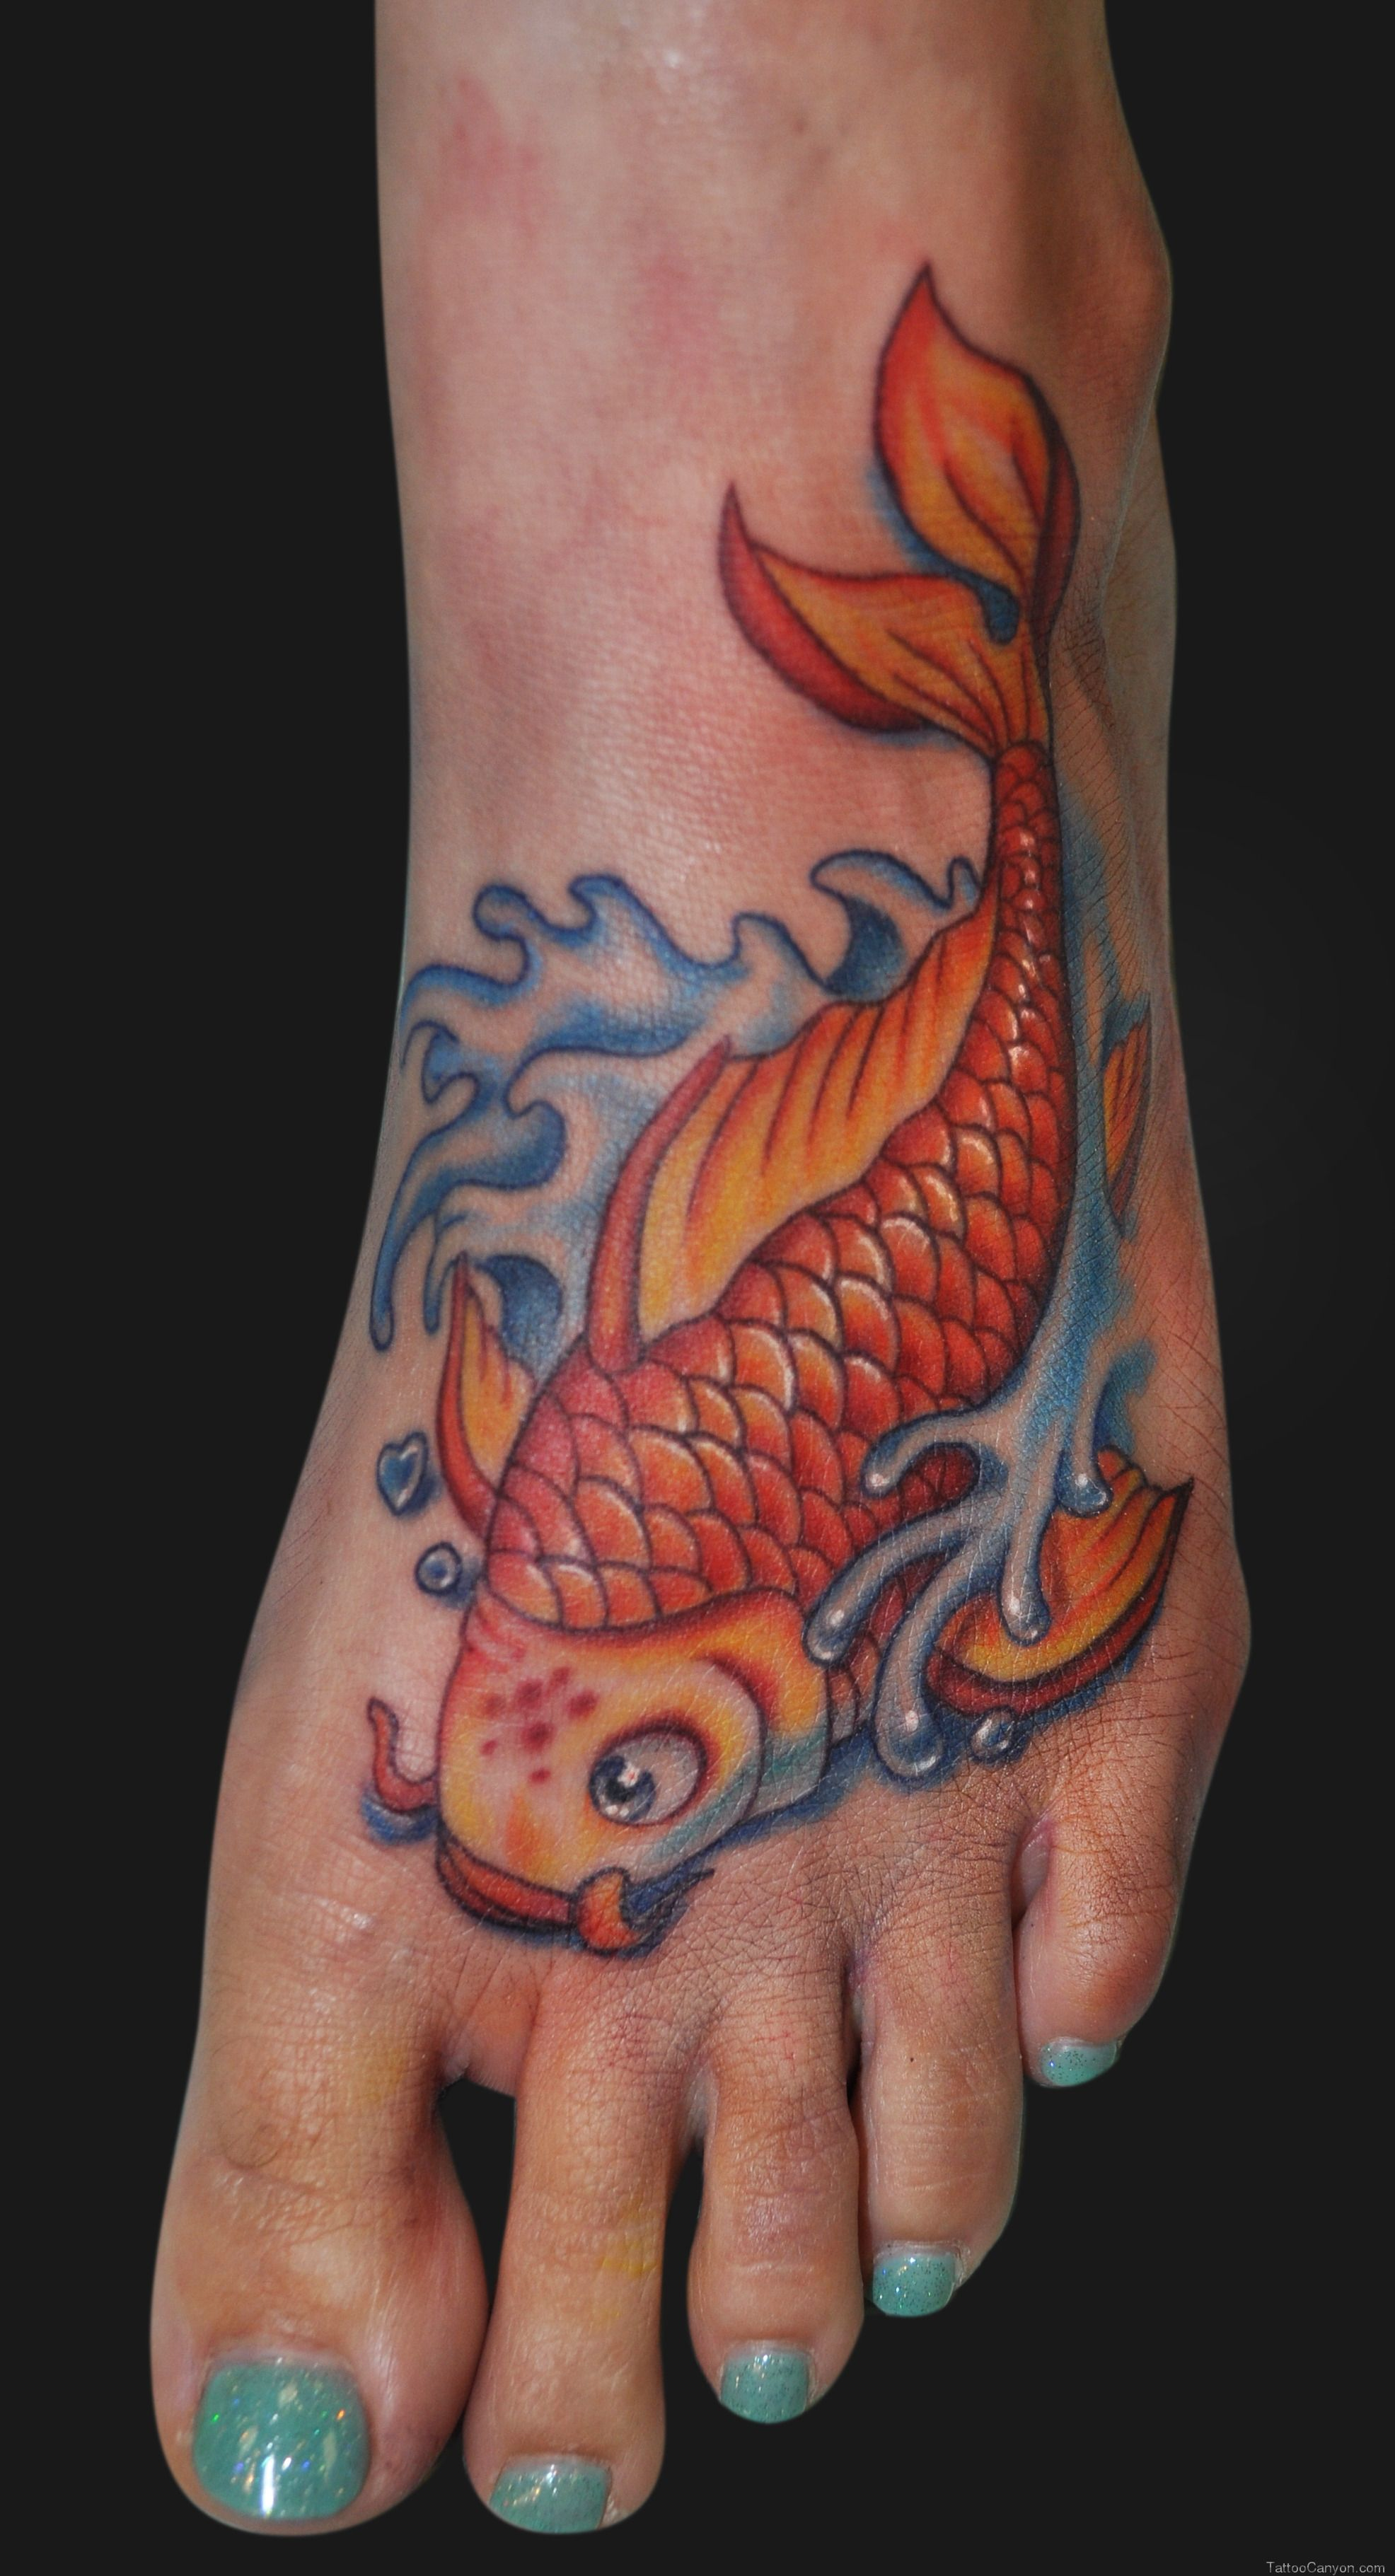 femine koi tattoo | More Tattoos Pictures Under: Feminine Tattoos ...